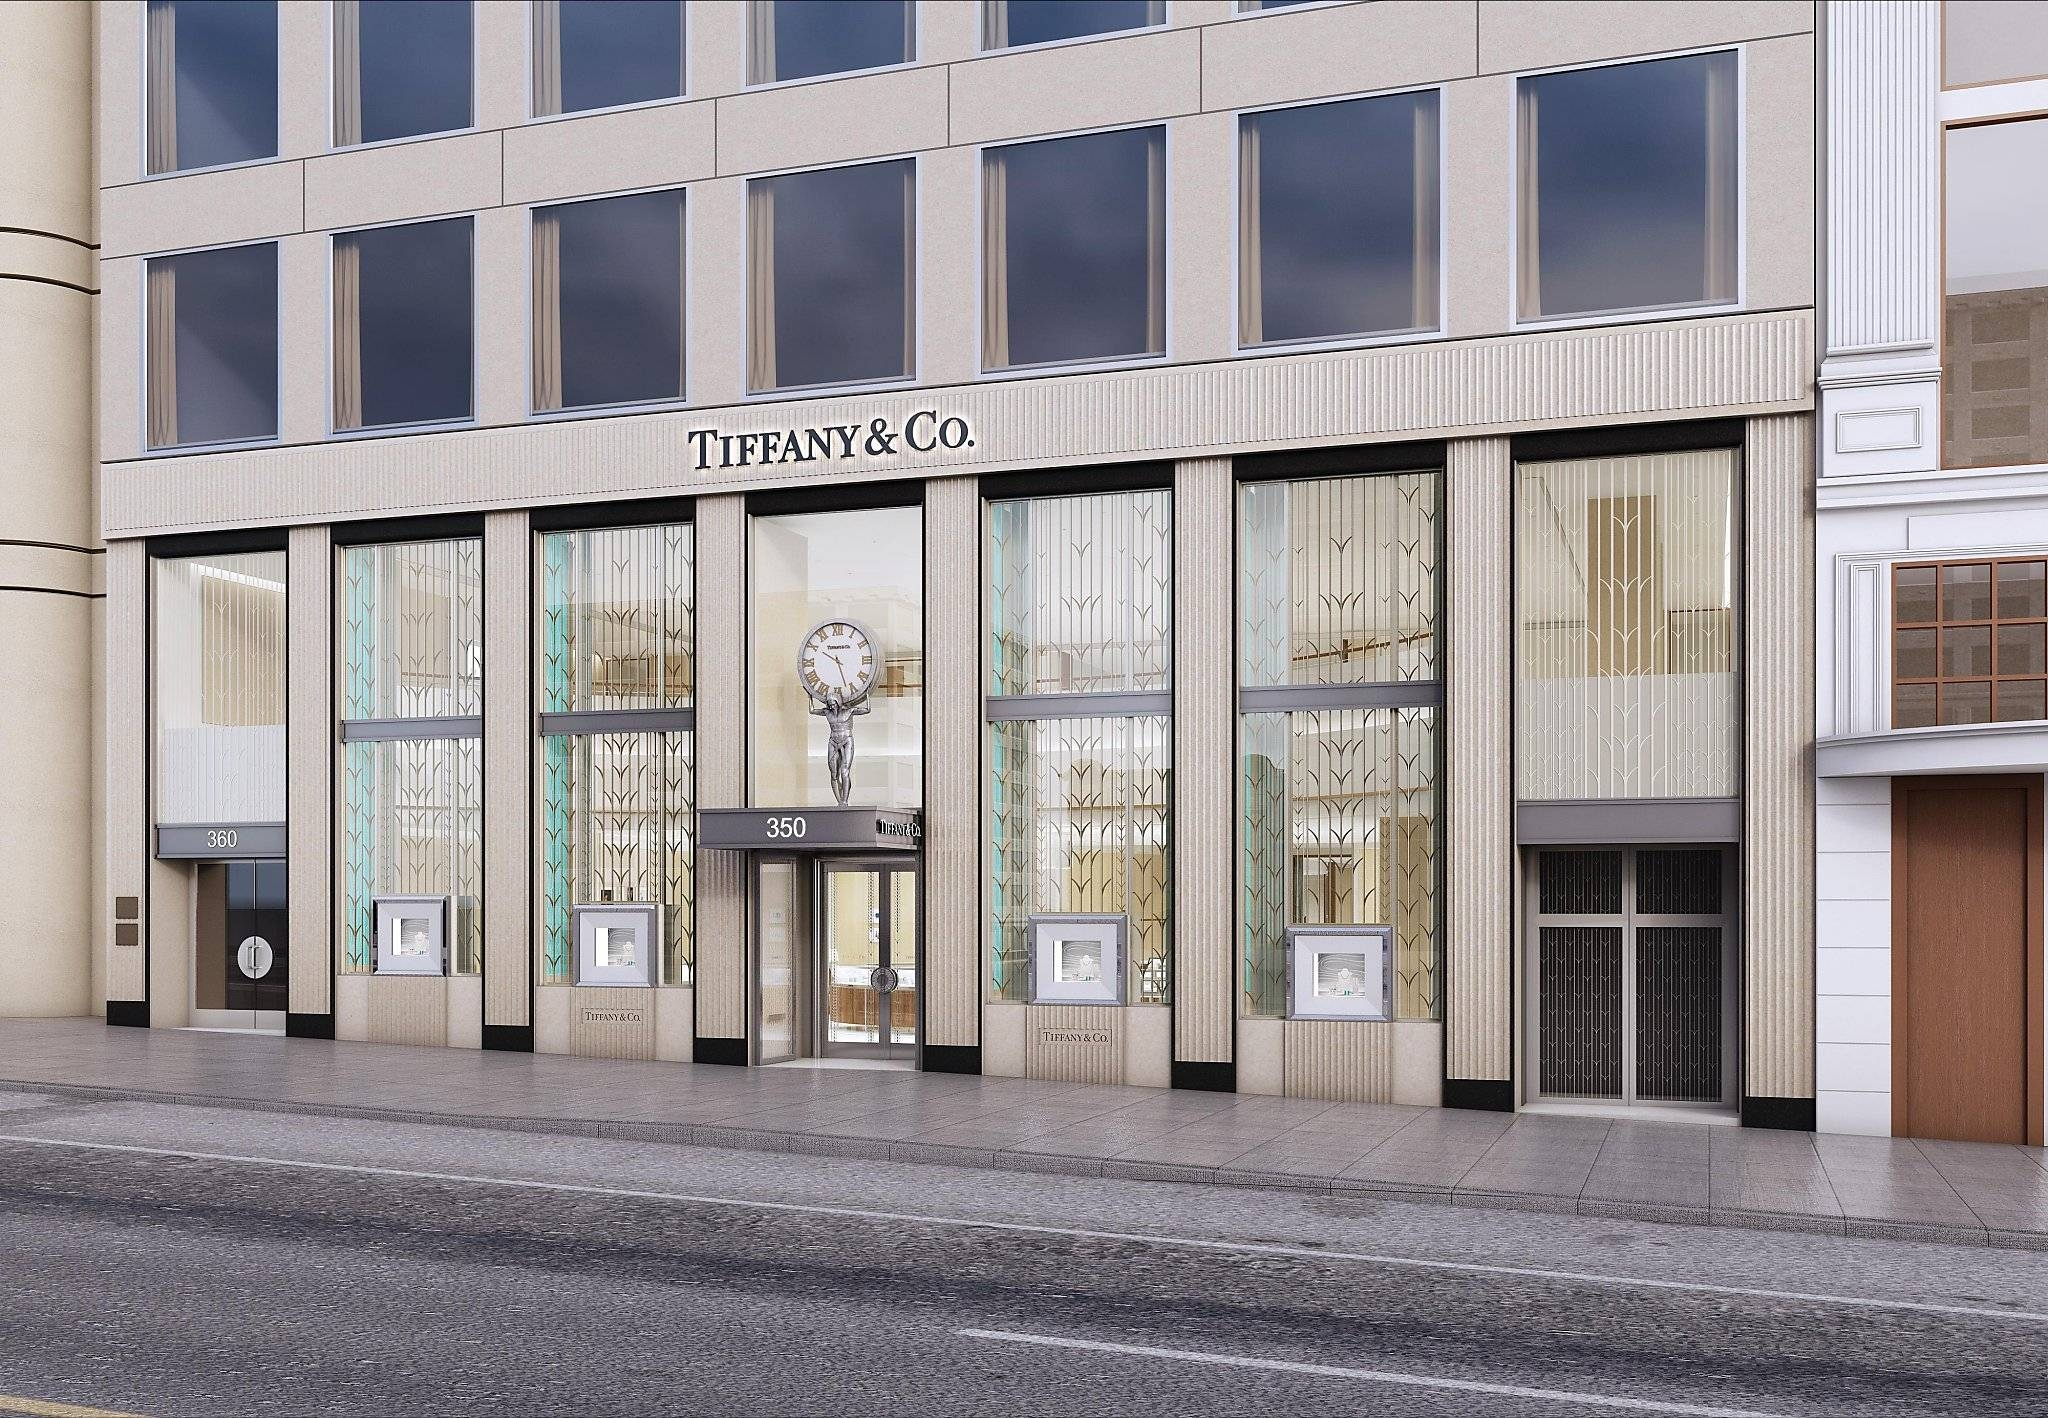 Tiffany's Splashy Union Square Remodel Unveiled – San Francisco Pertaining To Most Recent Tiffany And Co Wall Art (View 8 of 30)